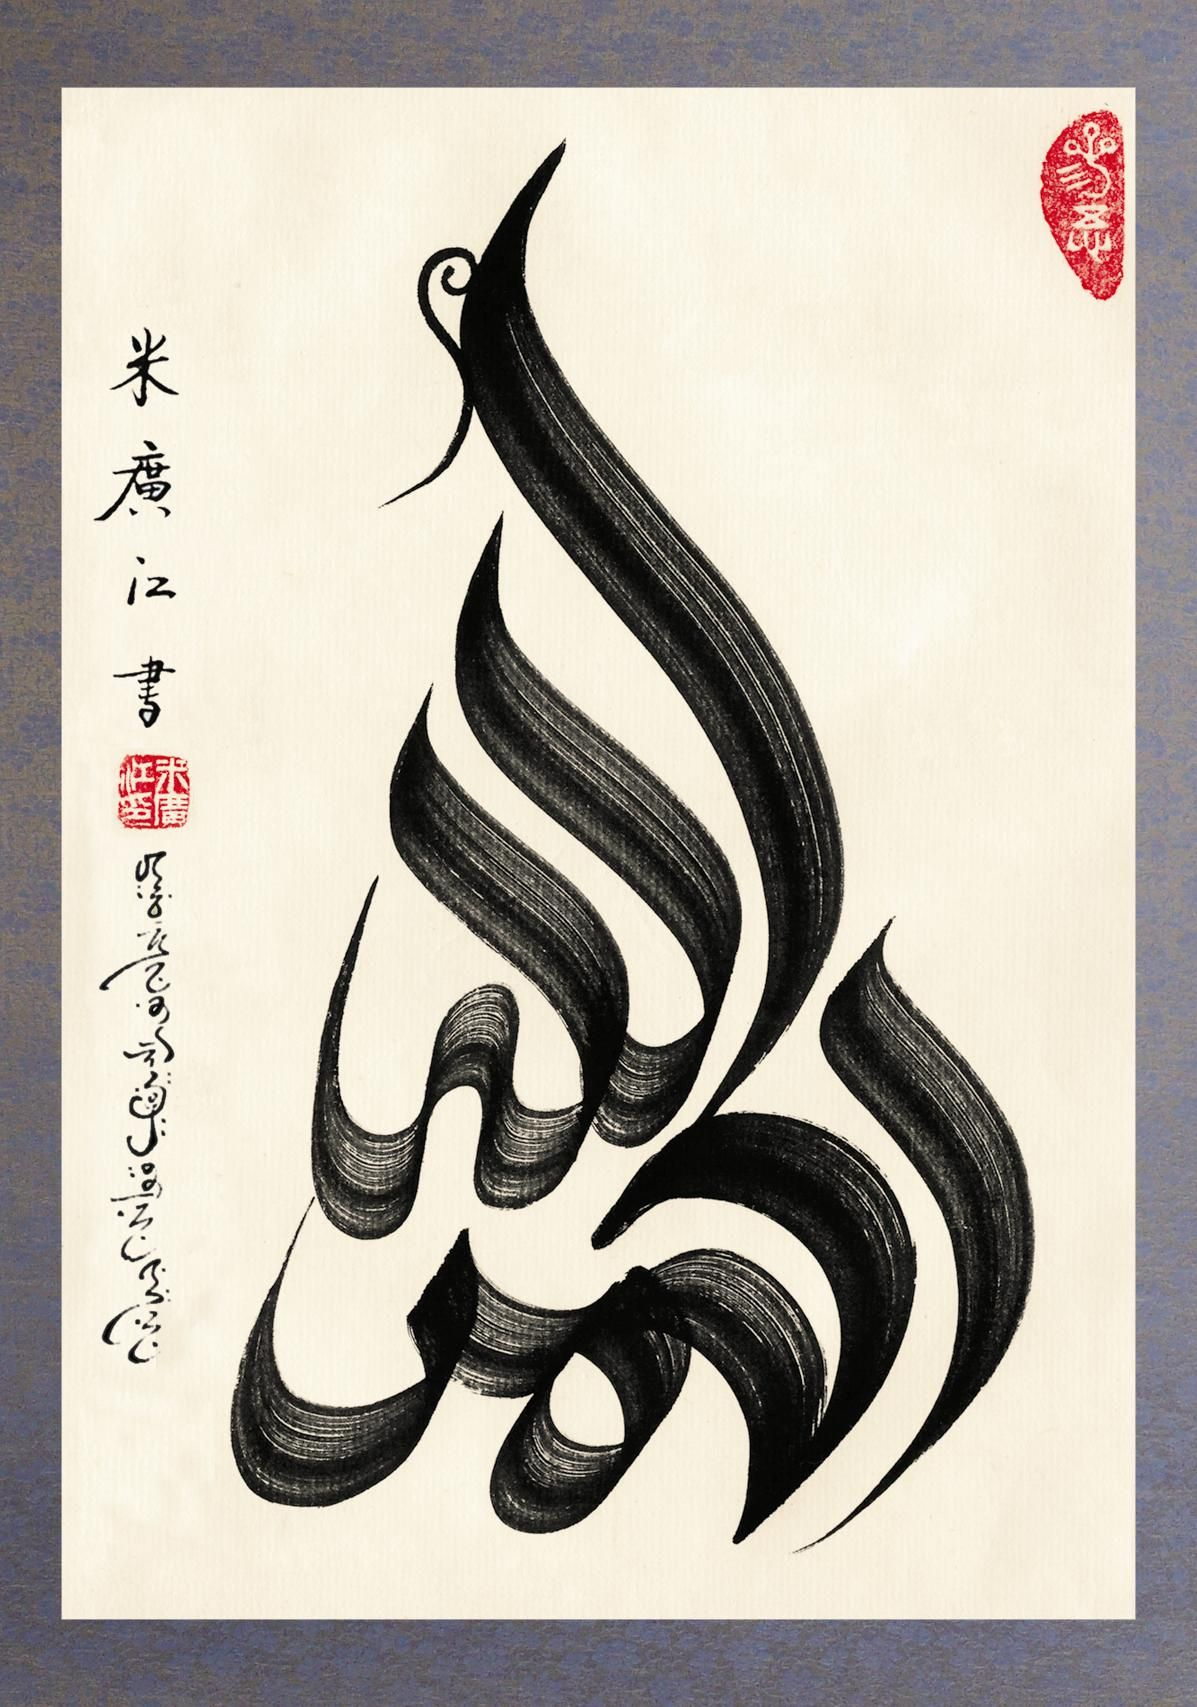 What is a good subtopic to write about on chinese calligraphy/art?